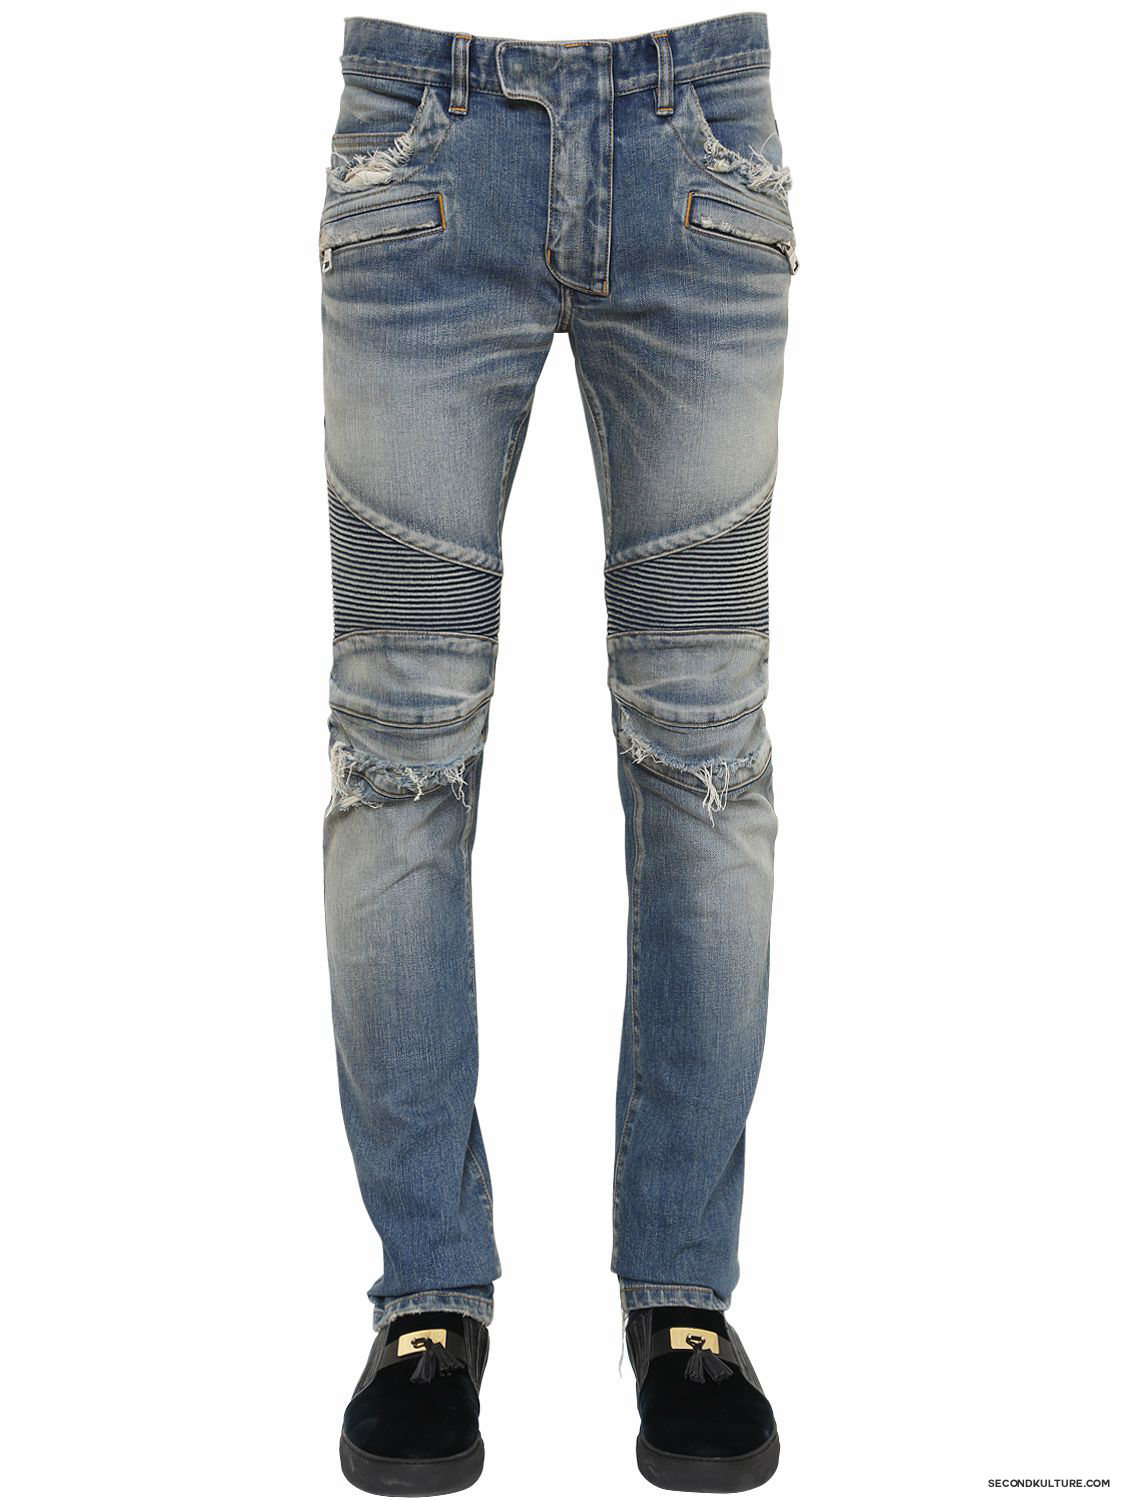 Balmain-16cm-Blue-Washed-Knee-Destroyed-Denim-Biker-Jeans-Fall-Winter-2015-1